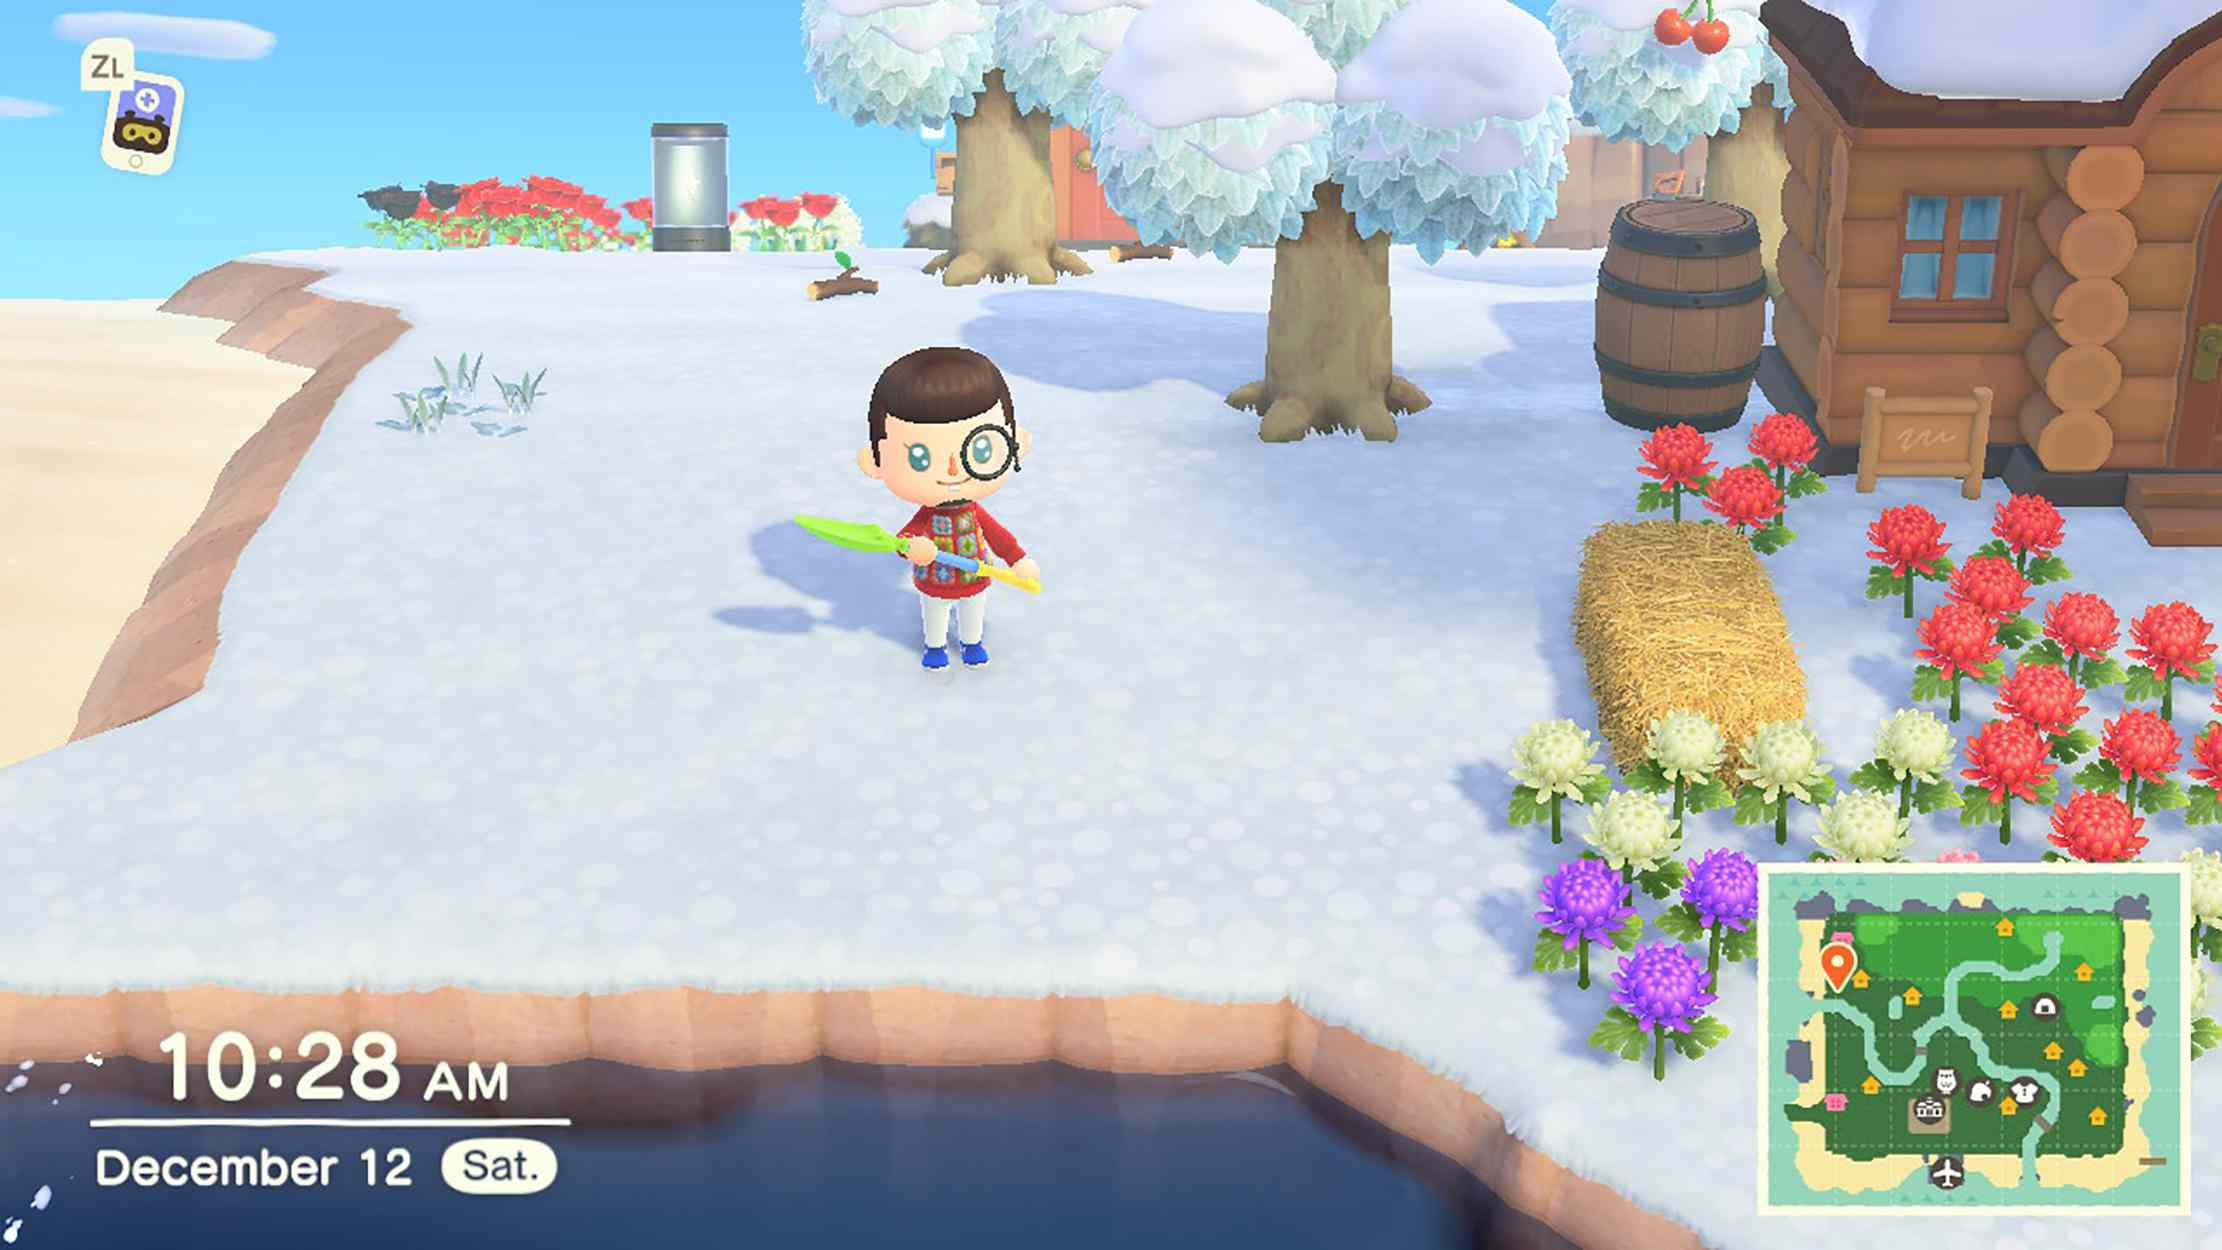 Screenshot of Animal Crossing New Horizons character with a shovel